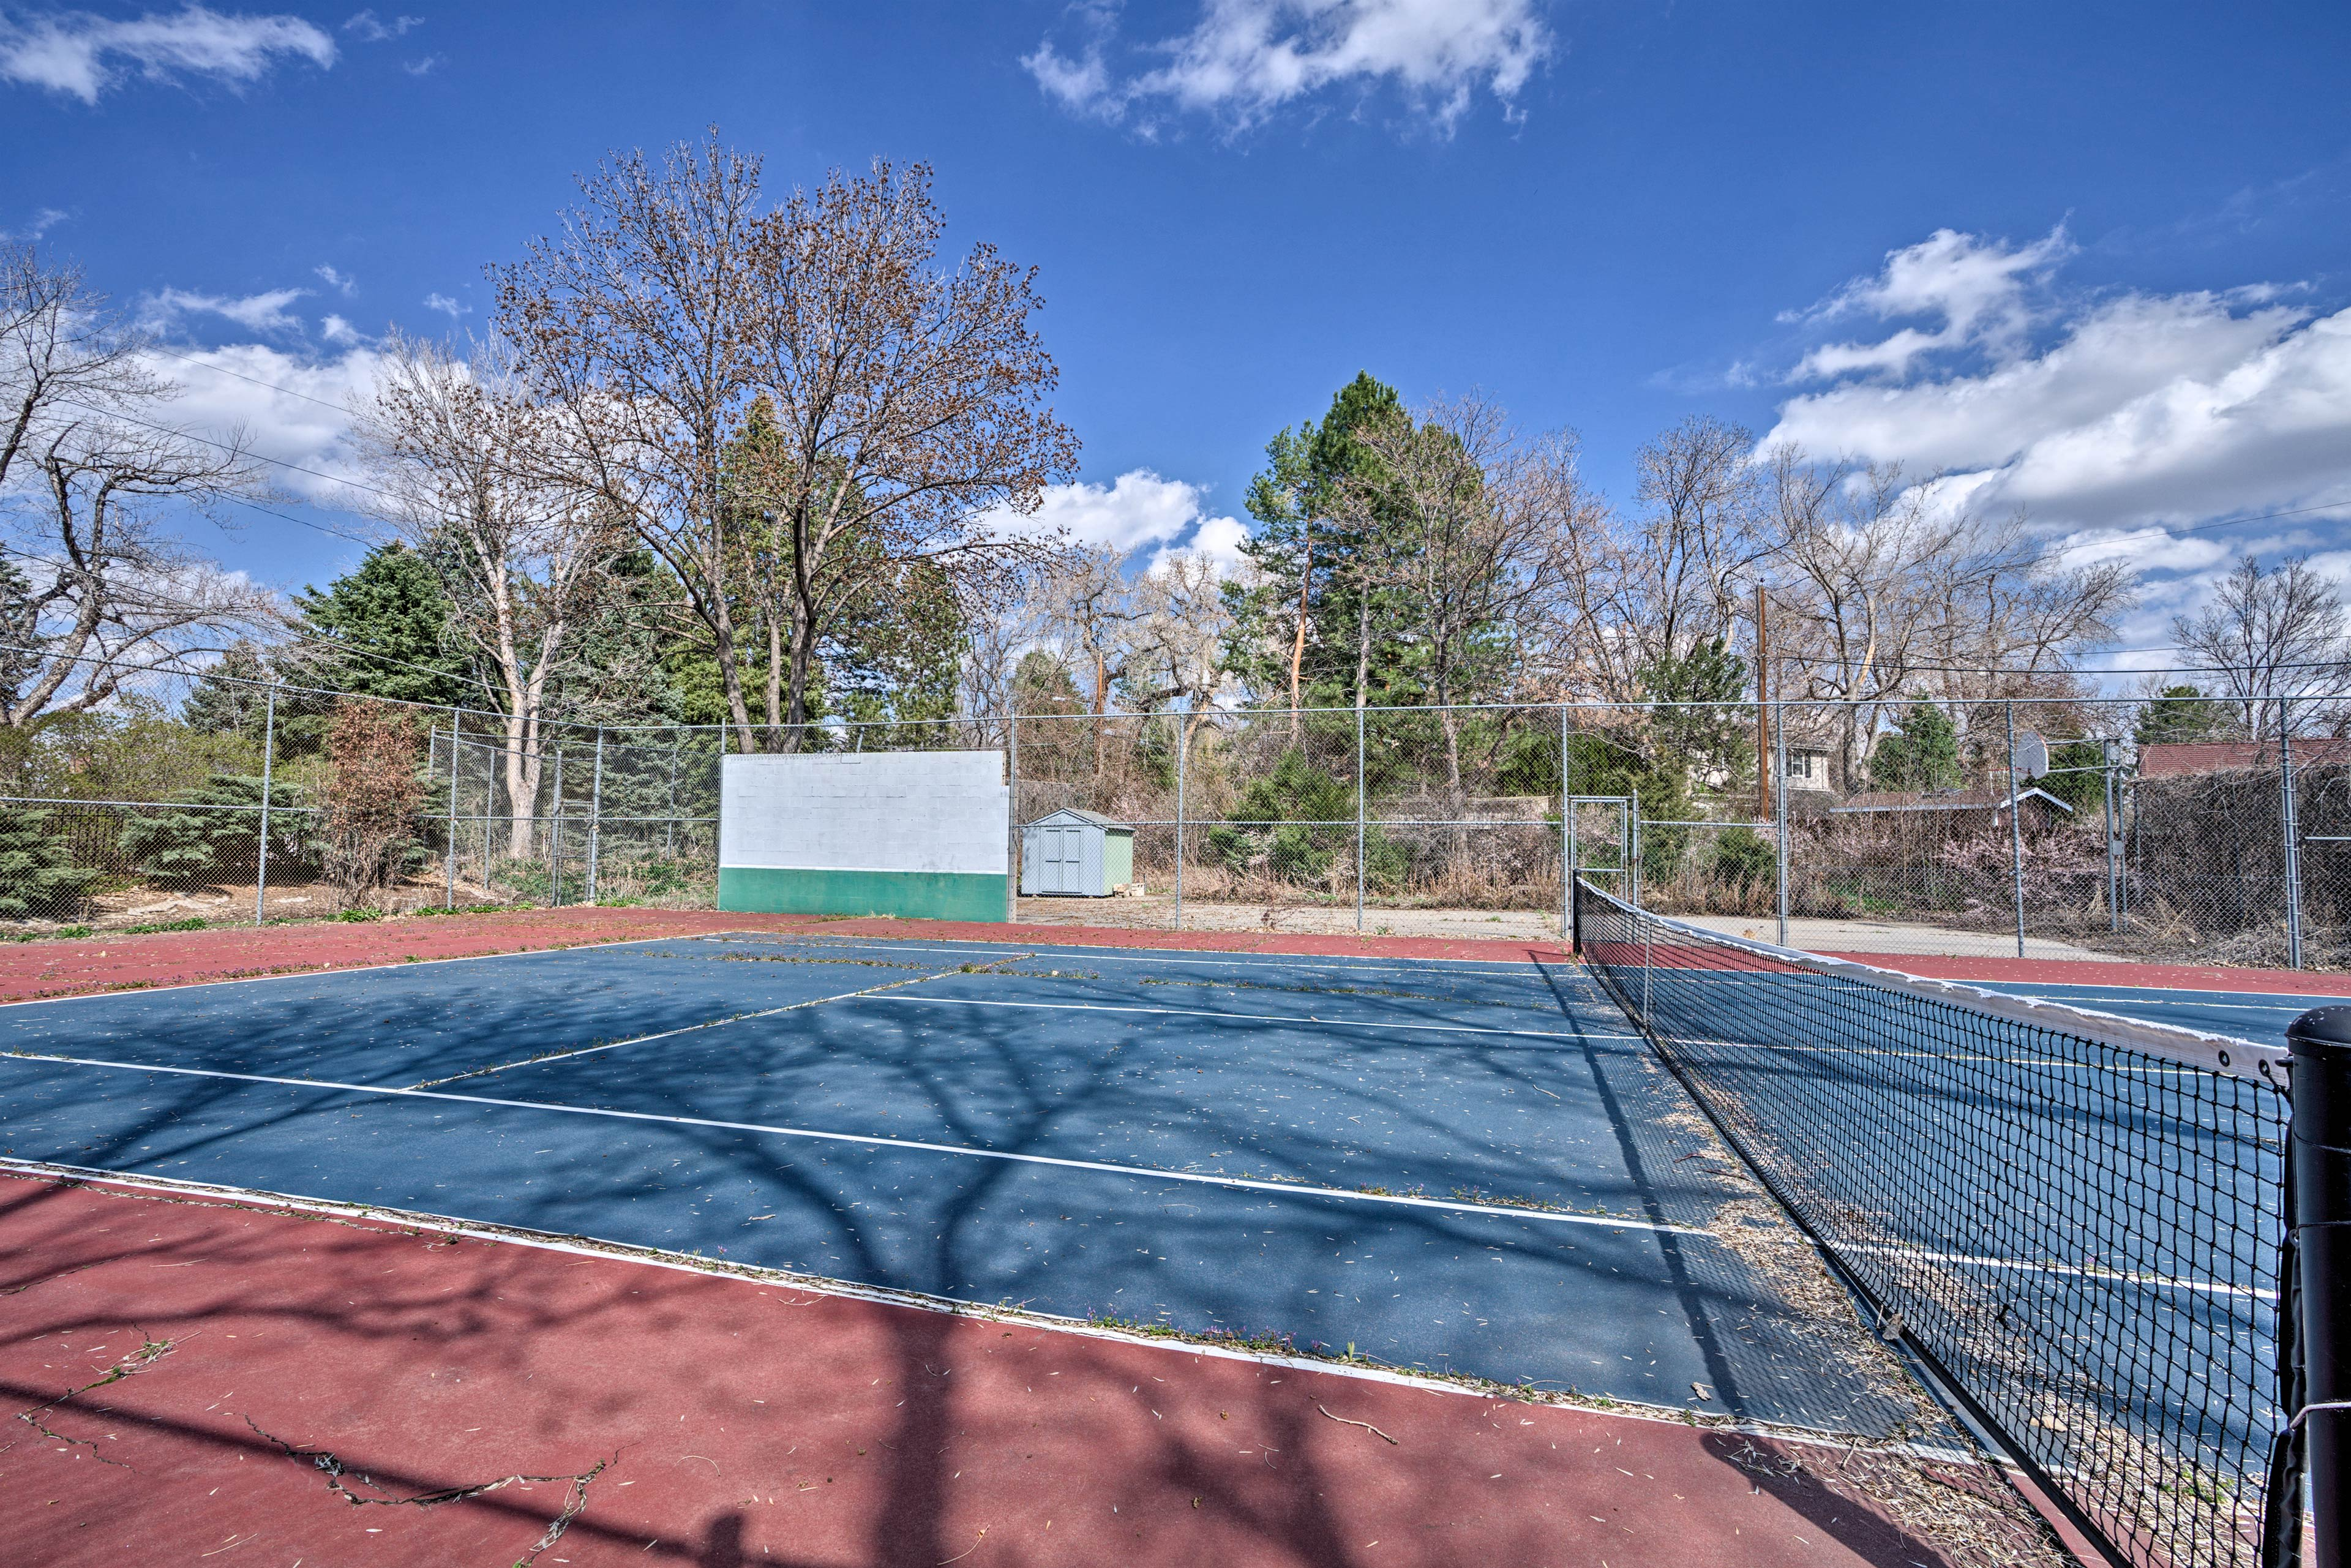 Who's up for an afternoon round of tennis?